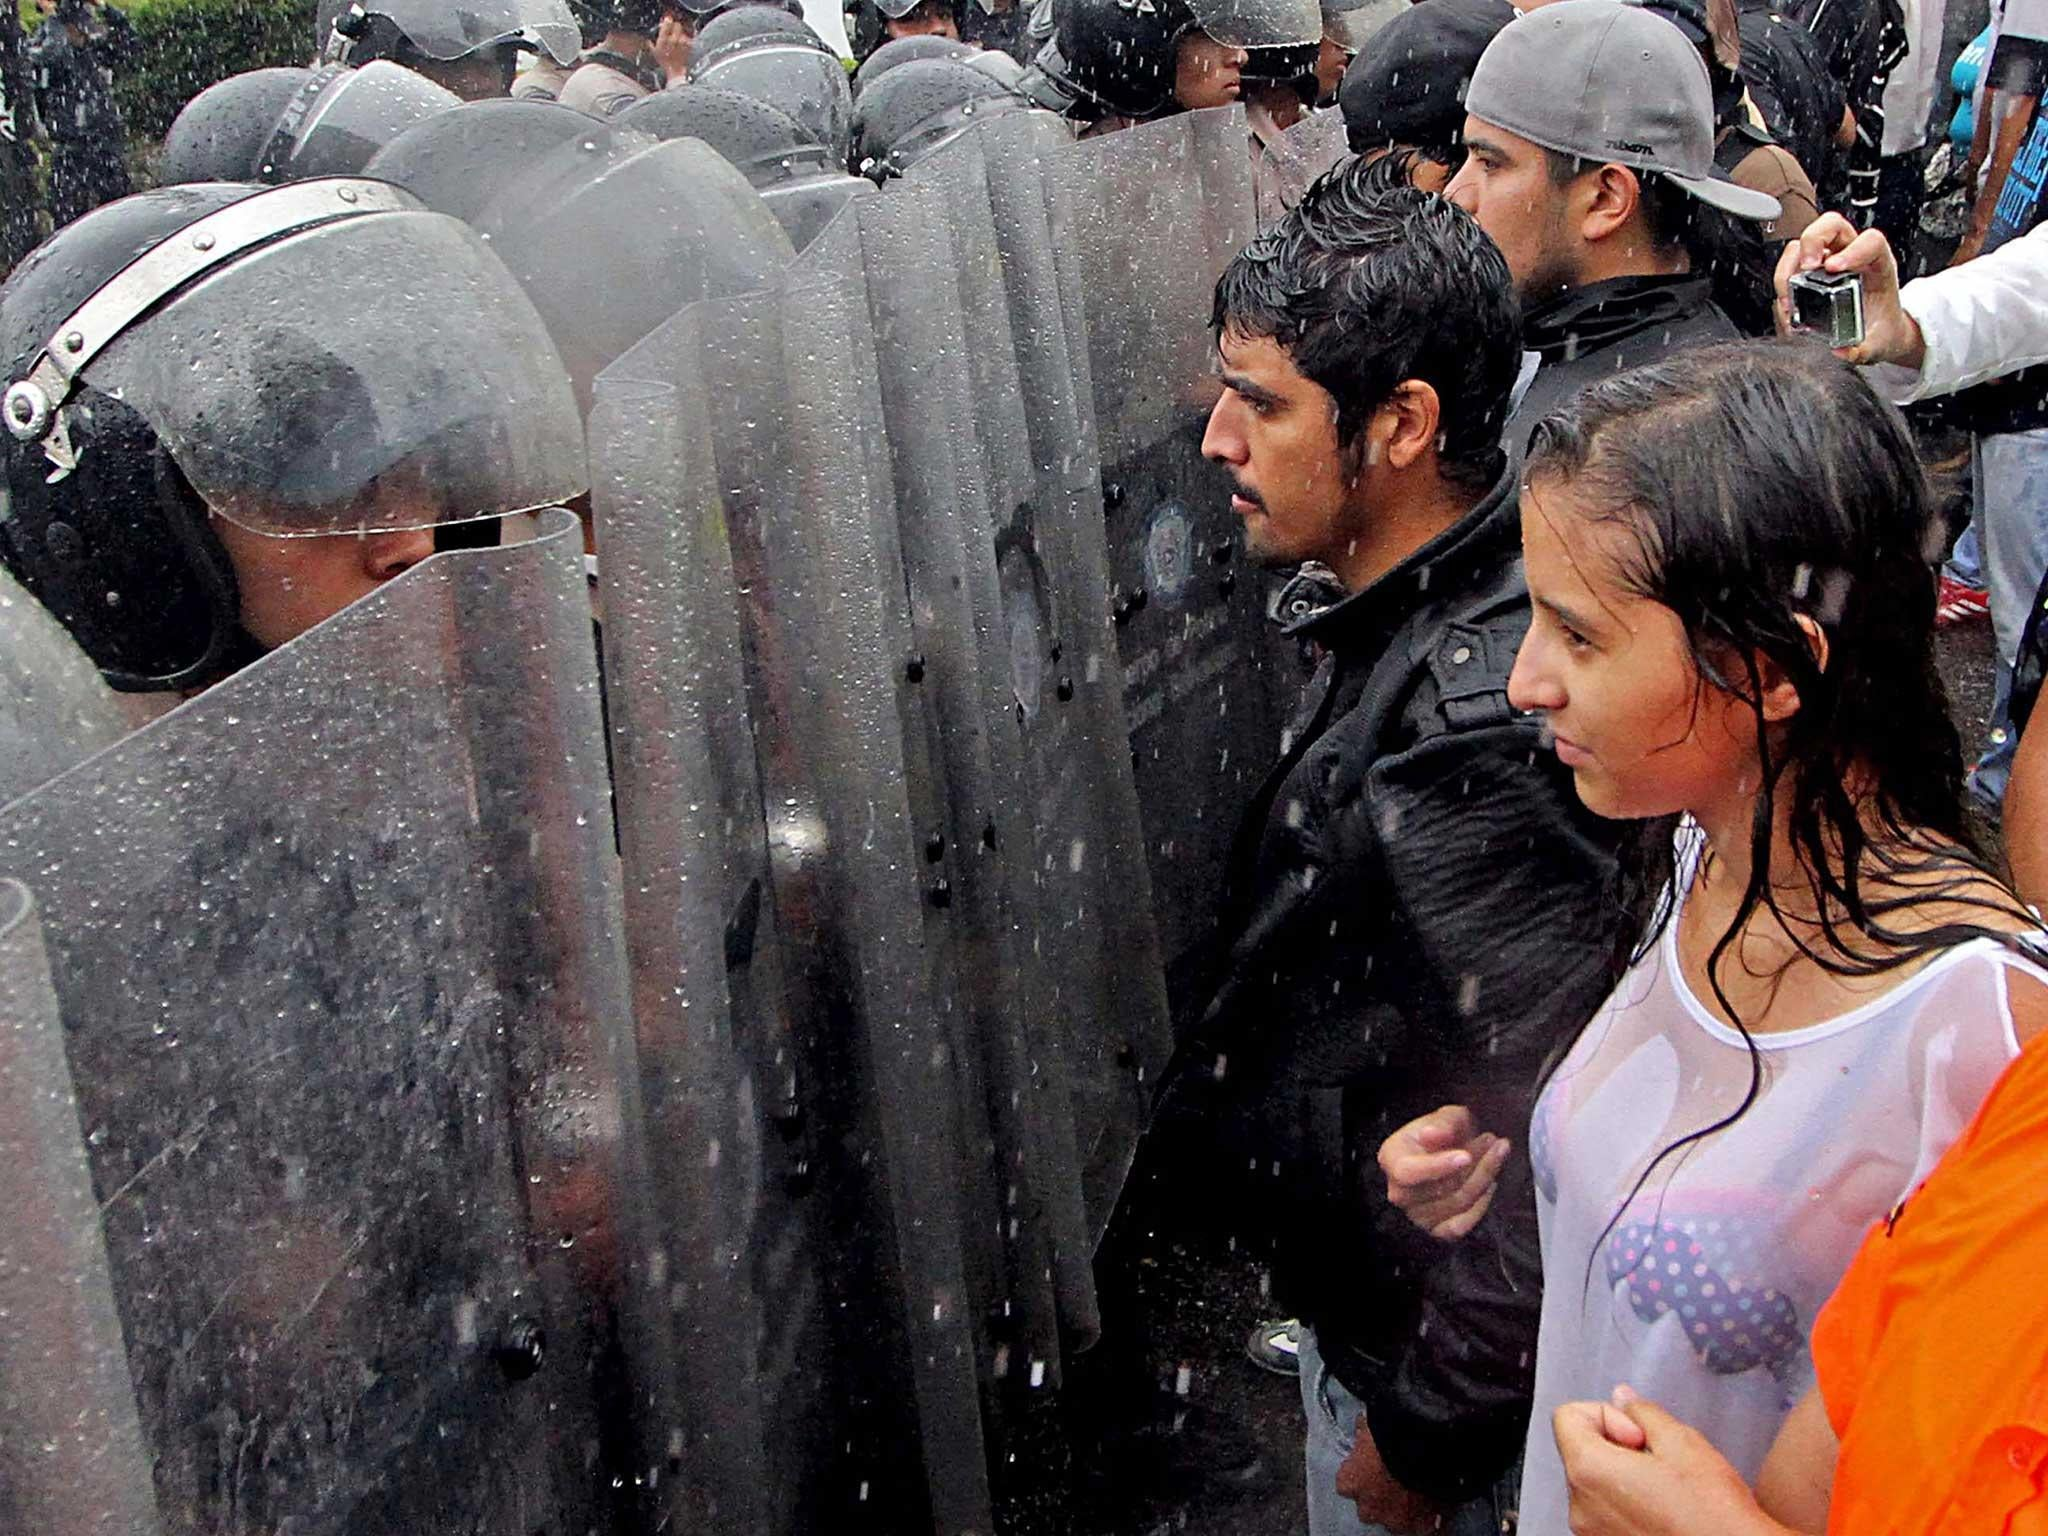 Venezuelan opposition urges people to take to the streets over 'coup'